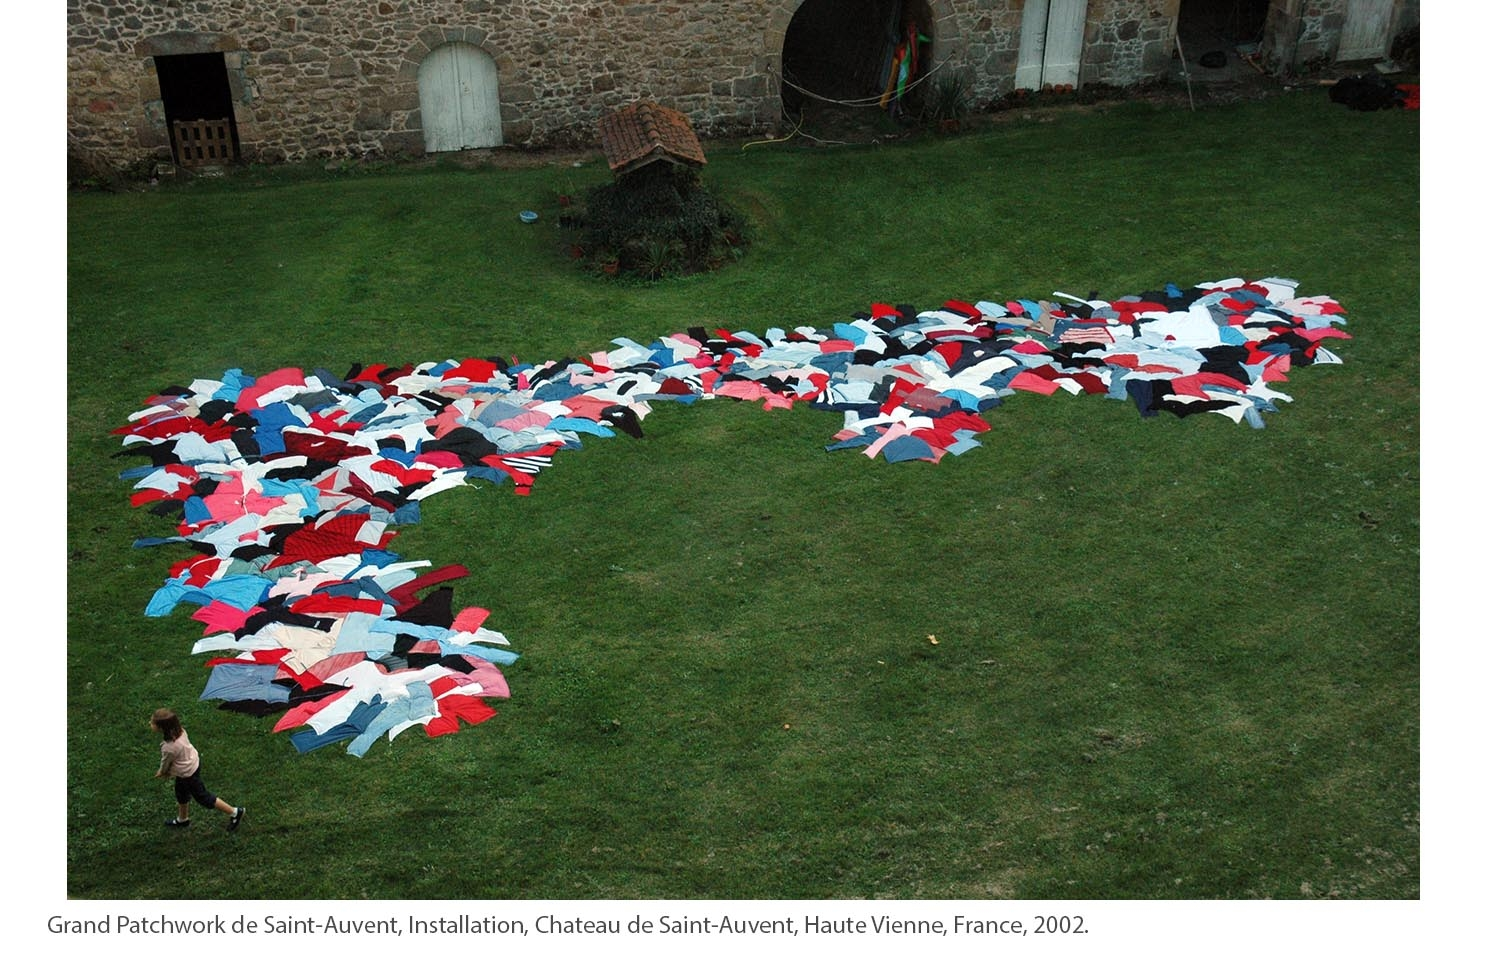 KAKO-Grand-Patchwork-de-Saint-Auvent-Installation-Chateau-de-Saint-Auvent-Haute-Vienne-France-2002.